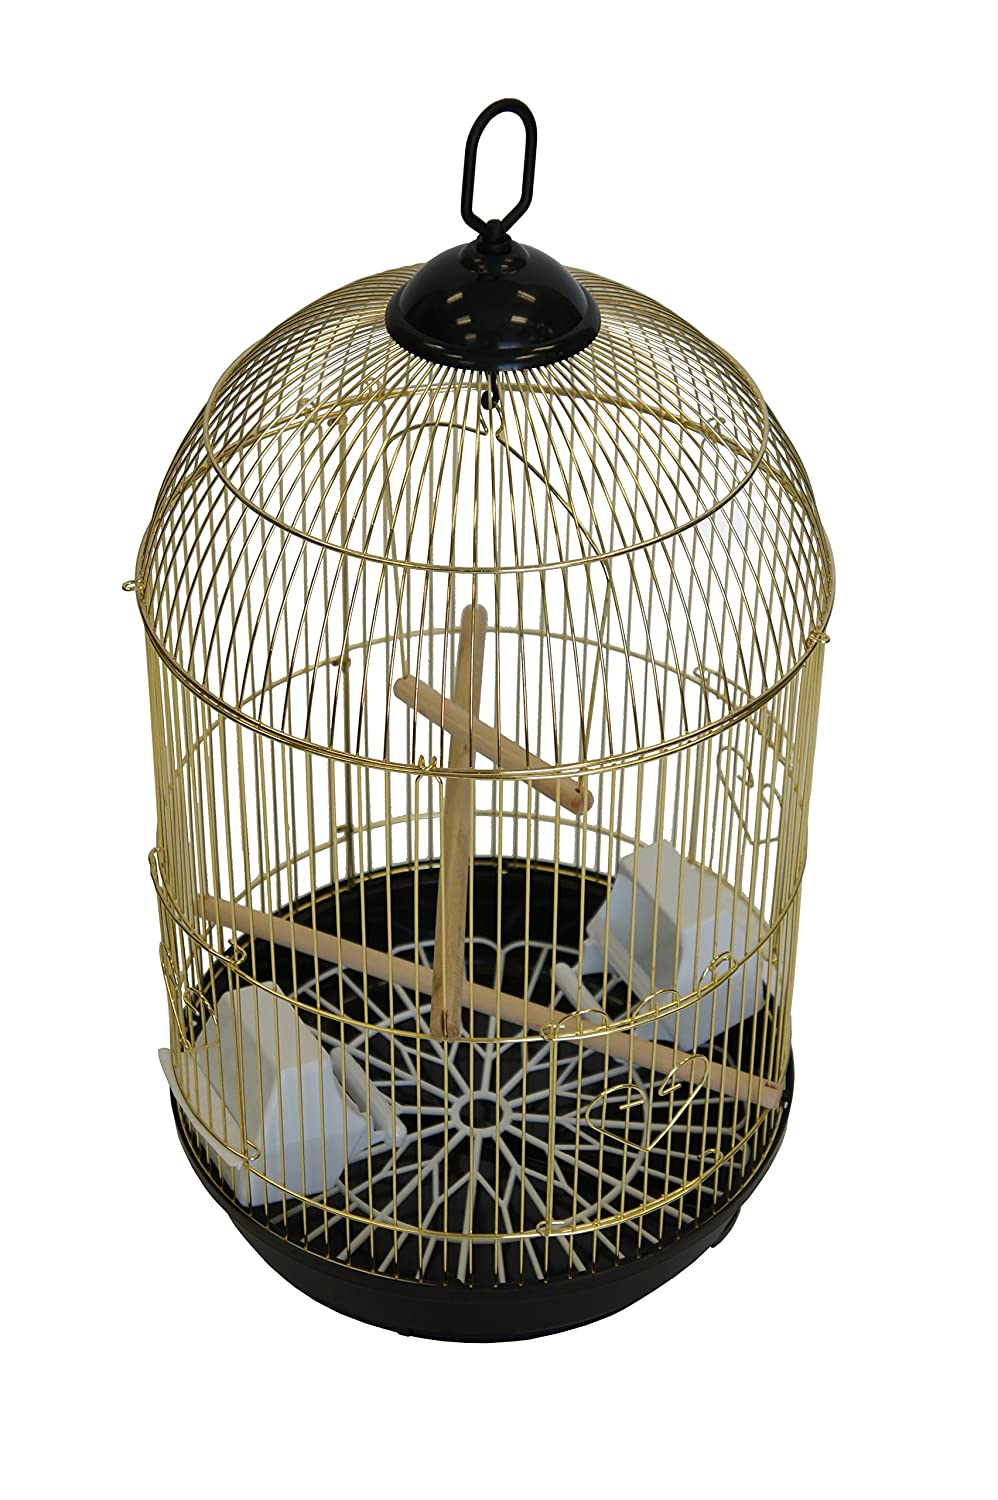 YML A1584 Bar Spacing Round Bird Cage, Medium, White A1584WHT